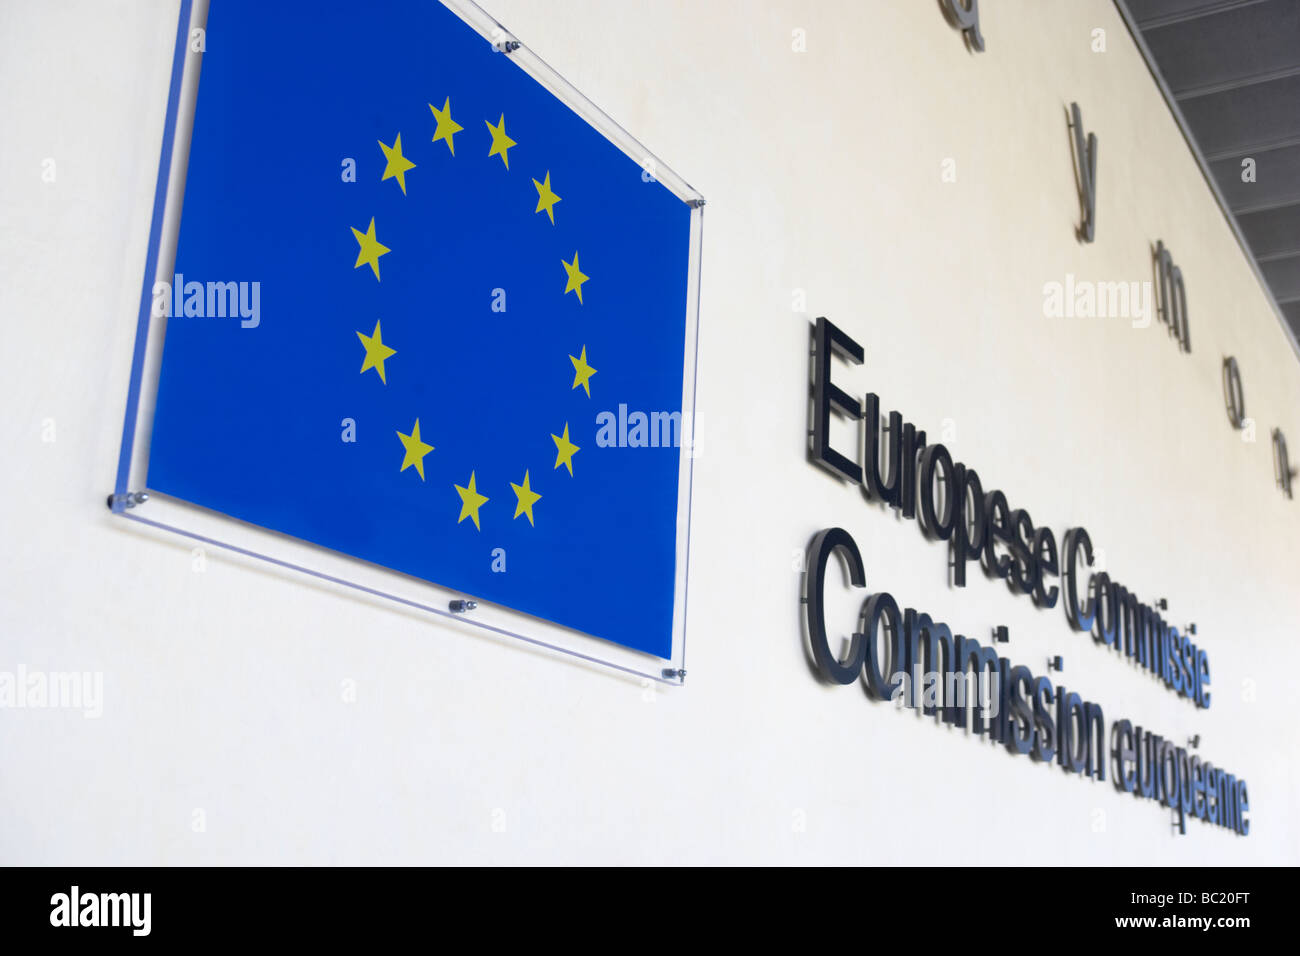 Exterior Of European Commission Building - Stock Image